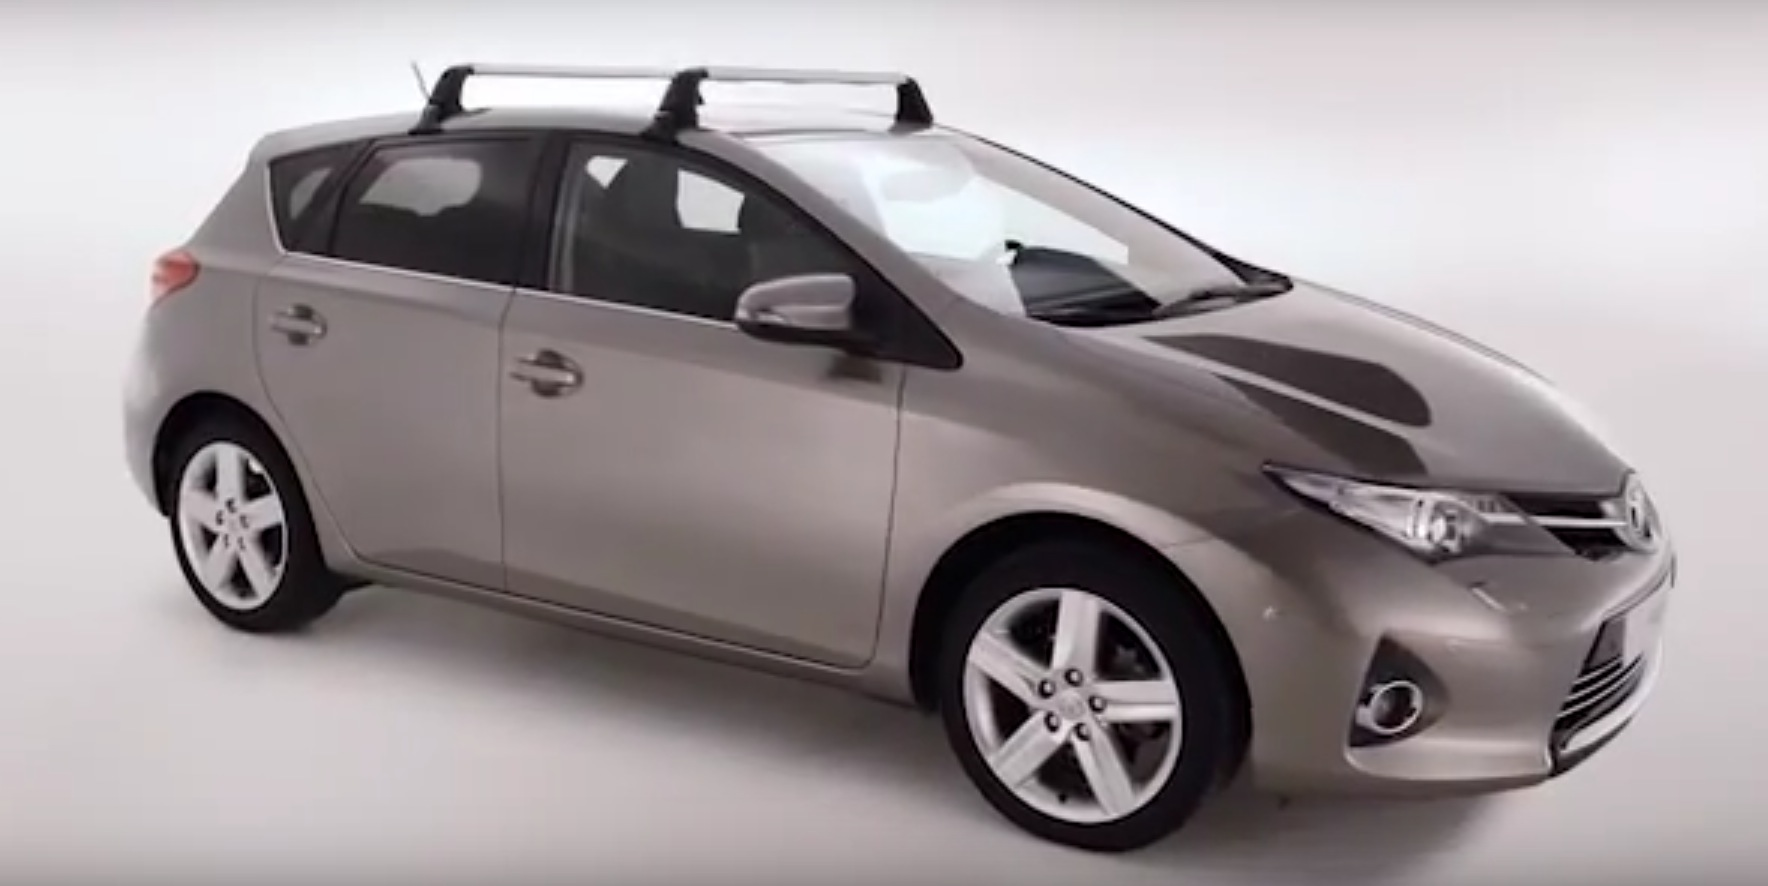 Toyota Explains How To Install A Roof Rack Or Cross Bars On Its Cars